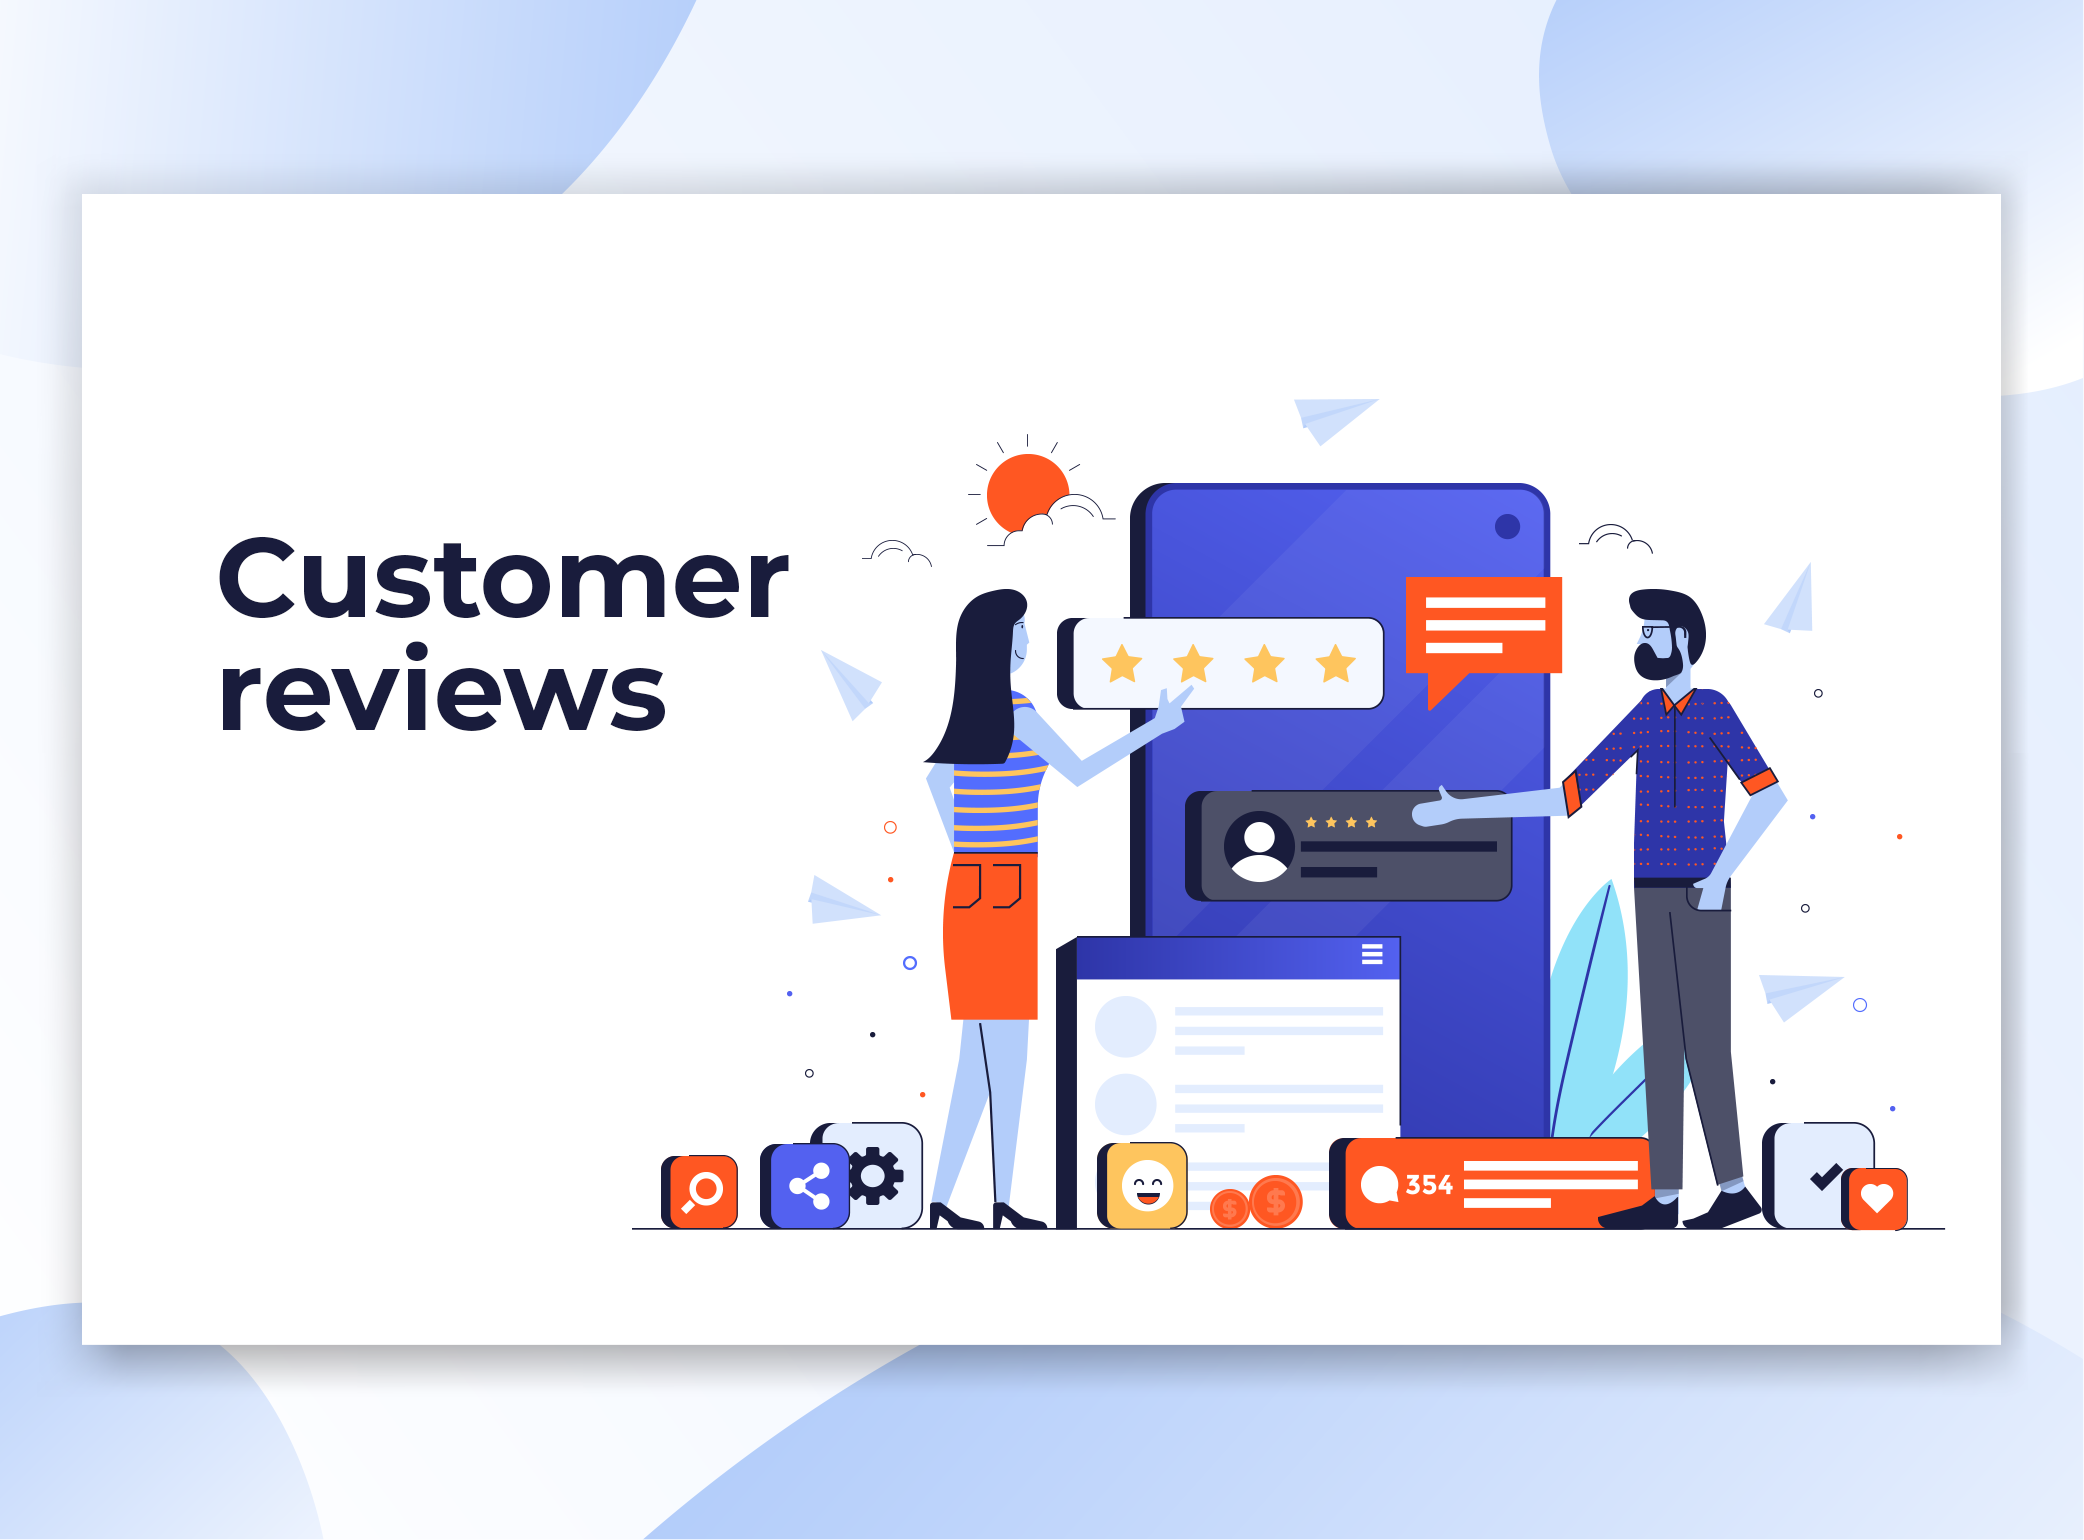 Customer Review Marketing, Customer Relationships Management, Online Review Marketing, Reputation Management for Healthcare Marketing, Physical Therapy Marketing, Educational Marketing, and Technology Marketing